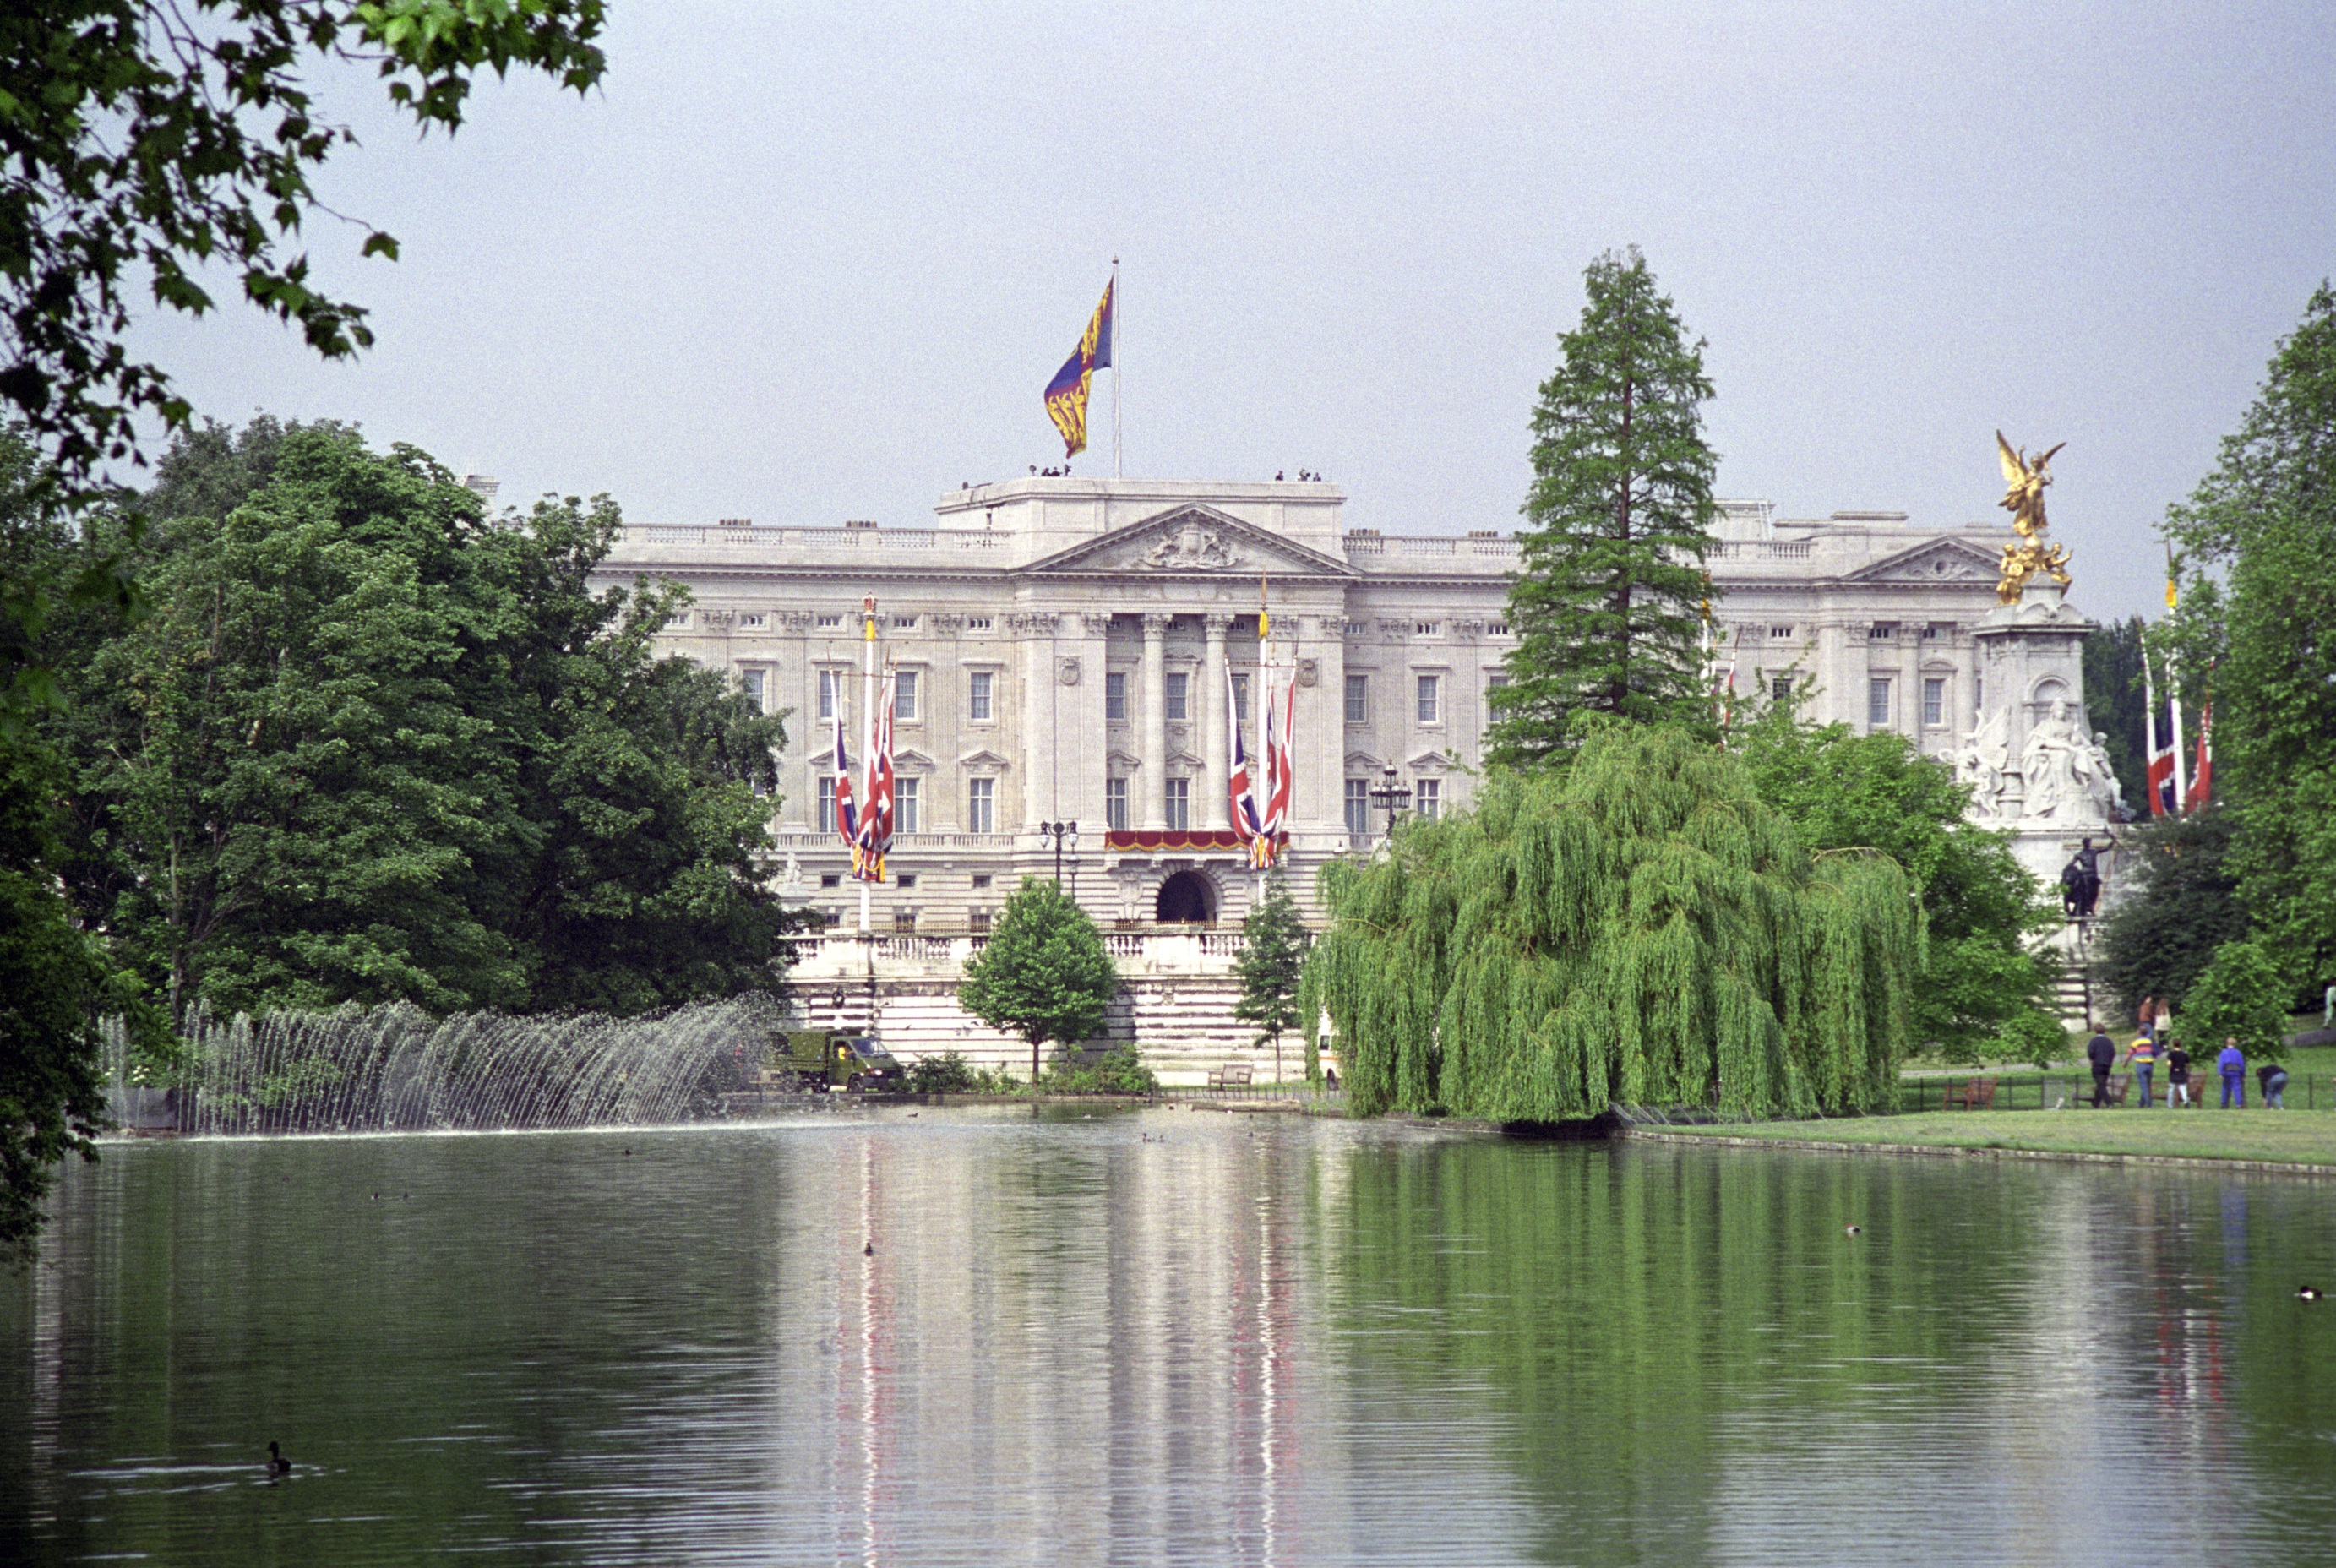 Tickets for The State Rooms, Buckingham Palace